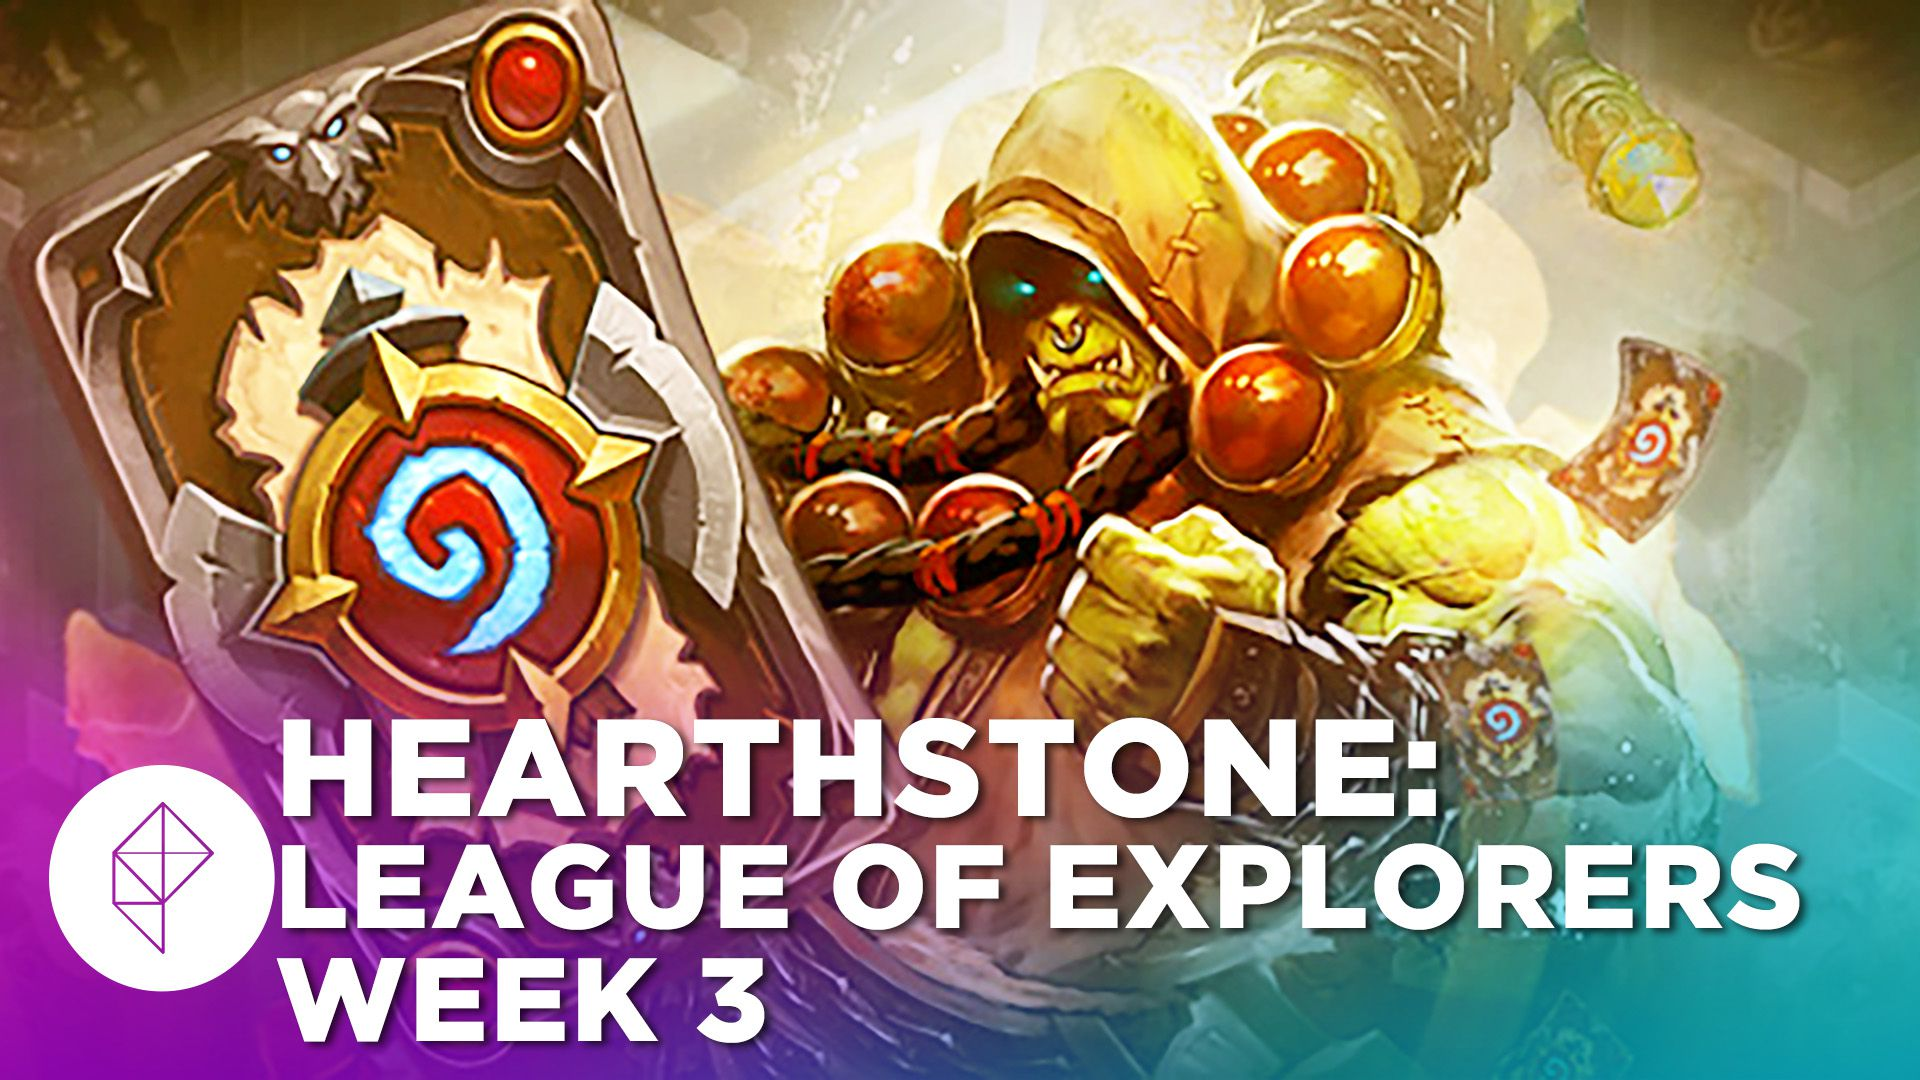 Https 2015 11 20 9769590 Xenoblade Chronicles Ps4 Sonic Forces Day One Edition R1 Eng Hearthstone League Explorers Week 3 Thumb